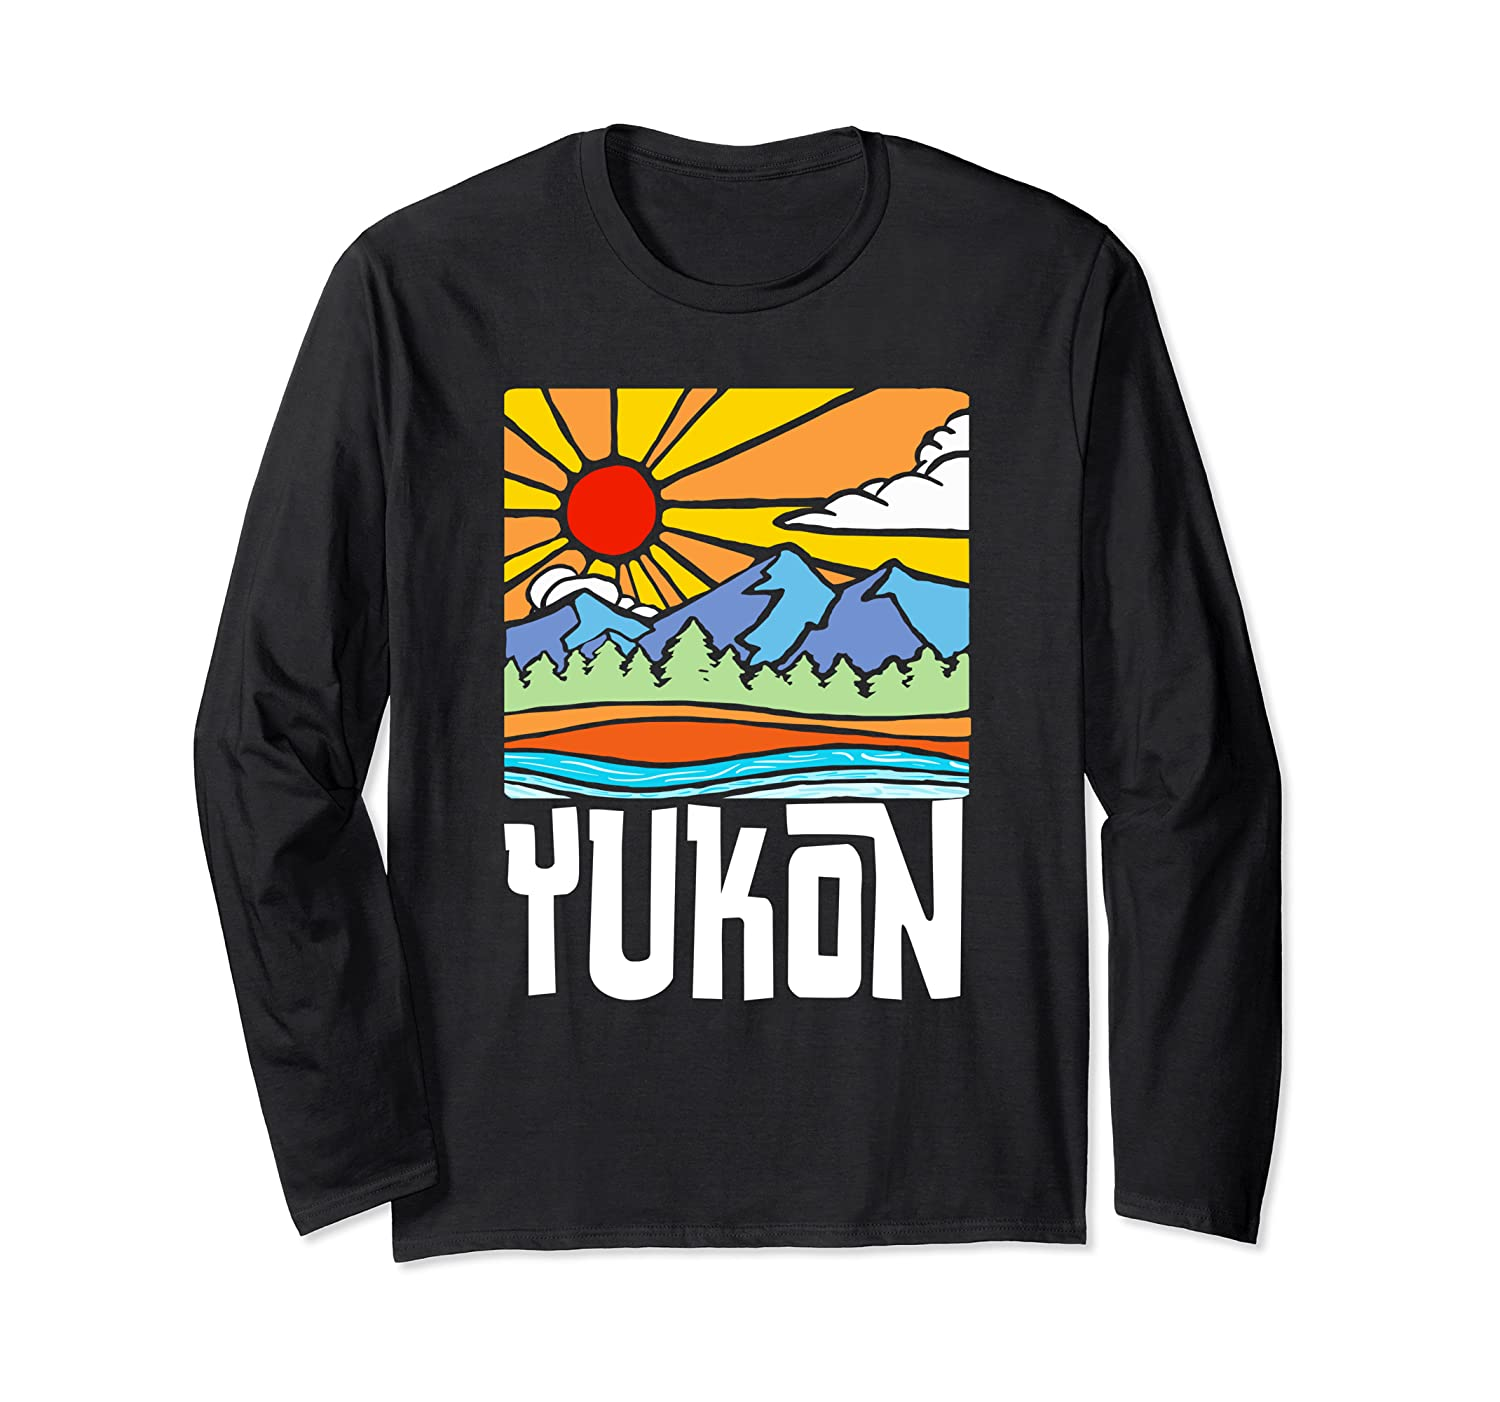 yukon canada artistic nature and mountains vintage graphic long sleeve t shirt 1 - Classic Shop